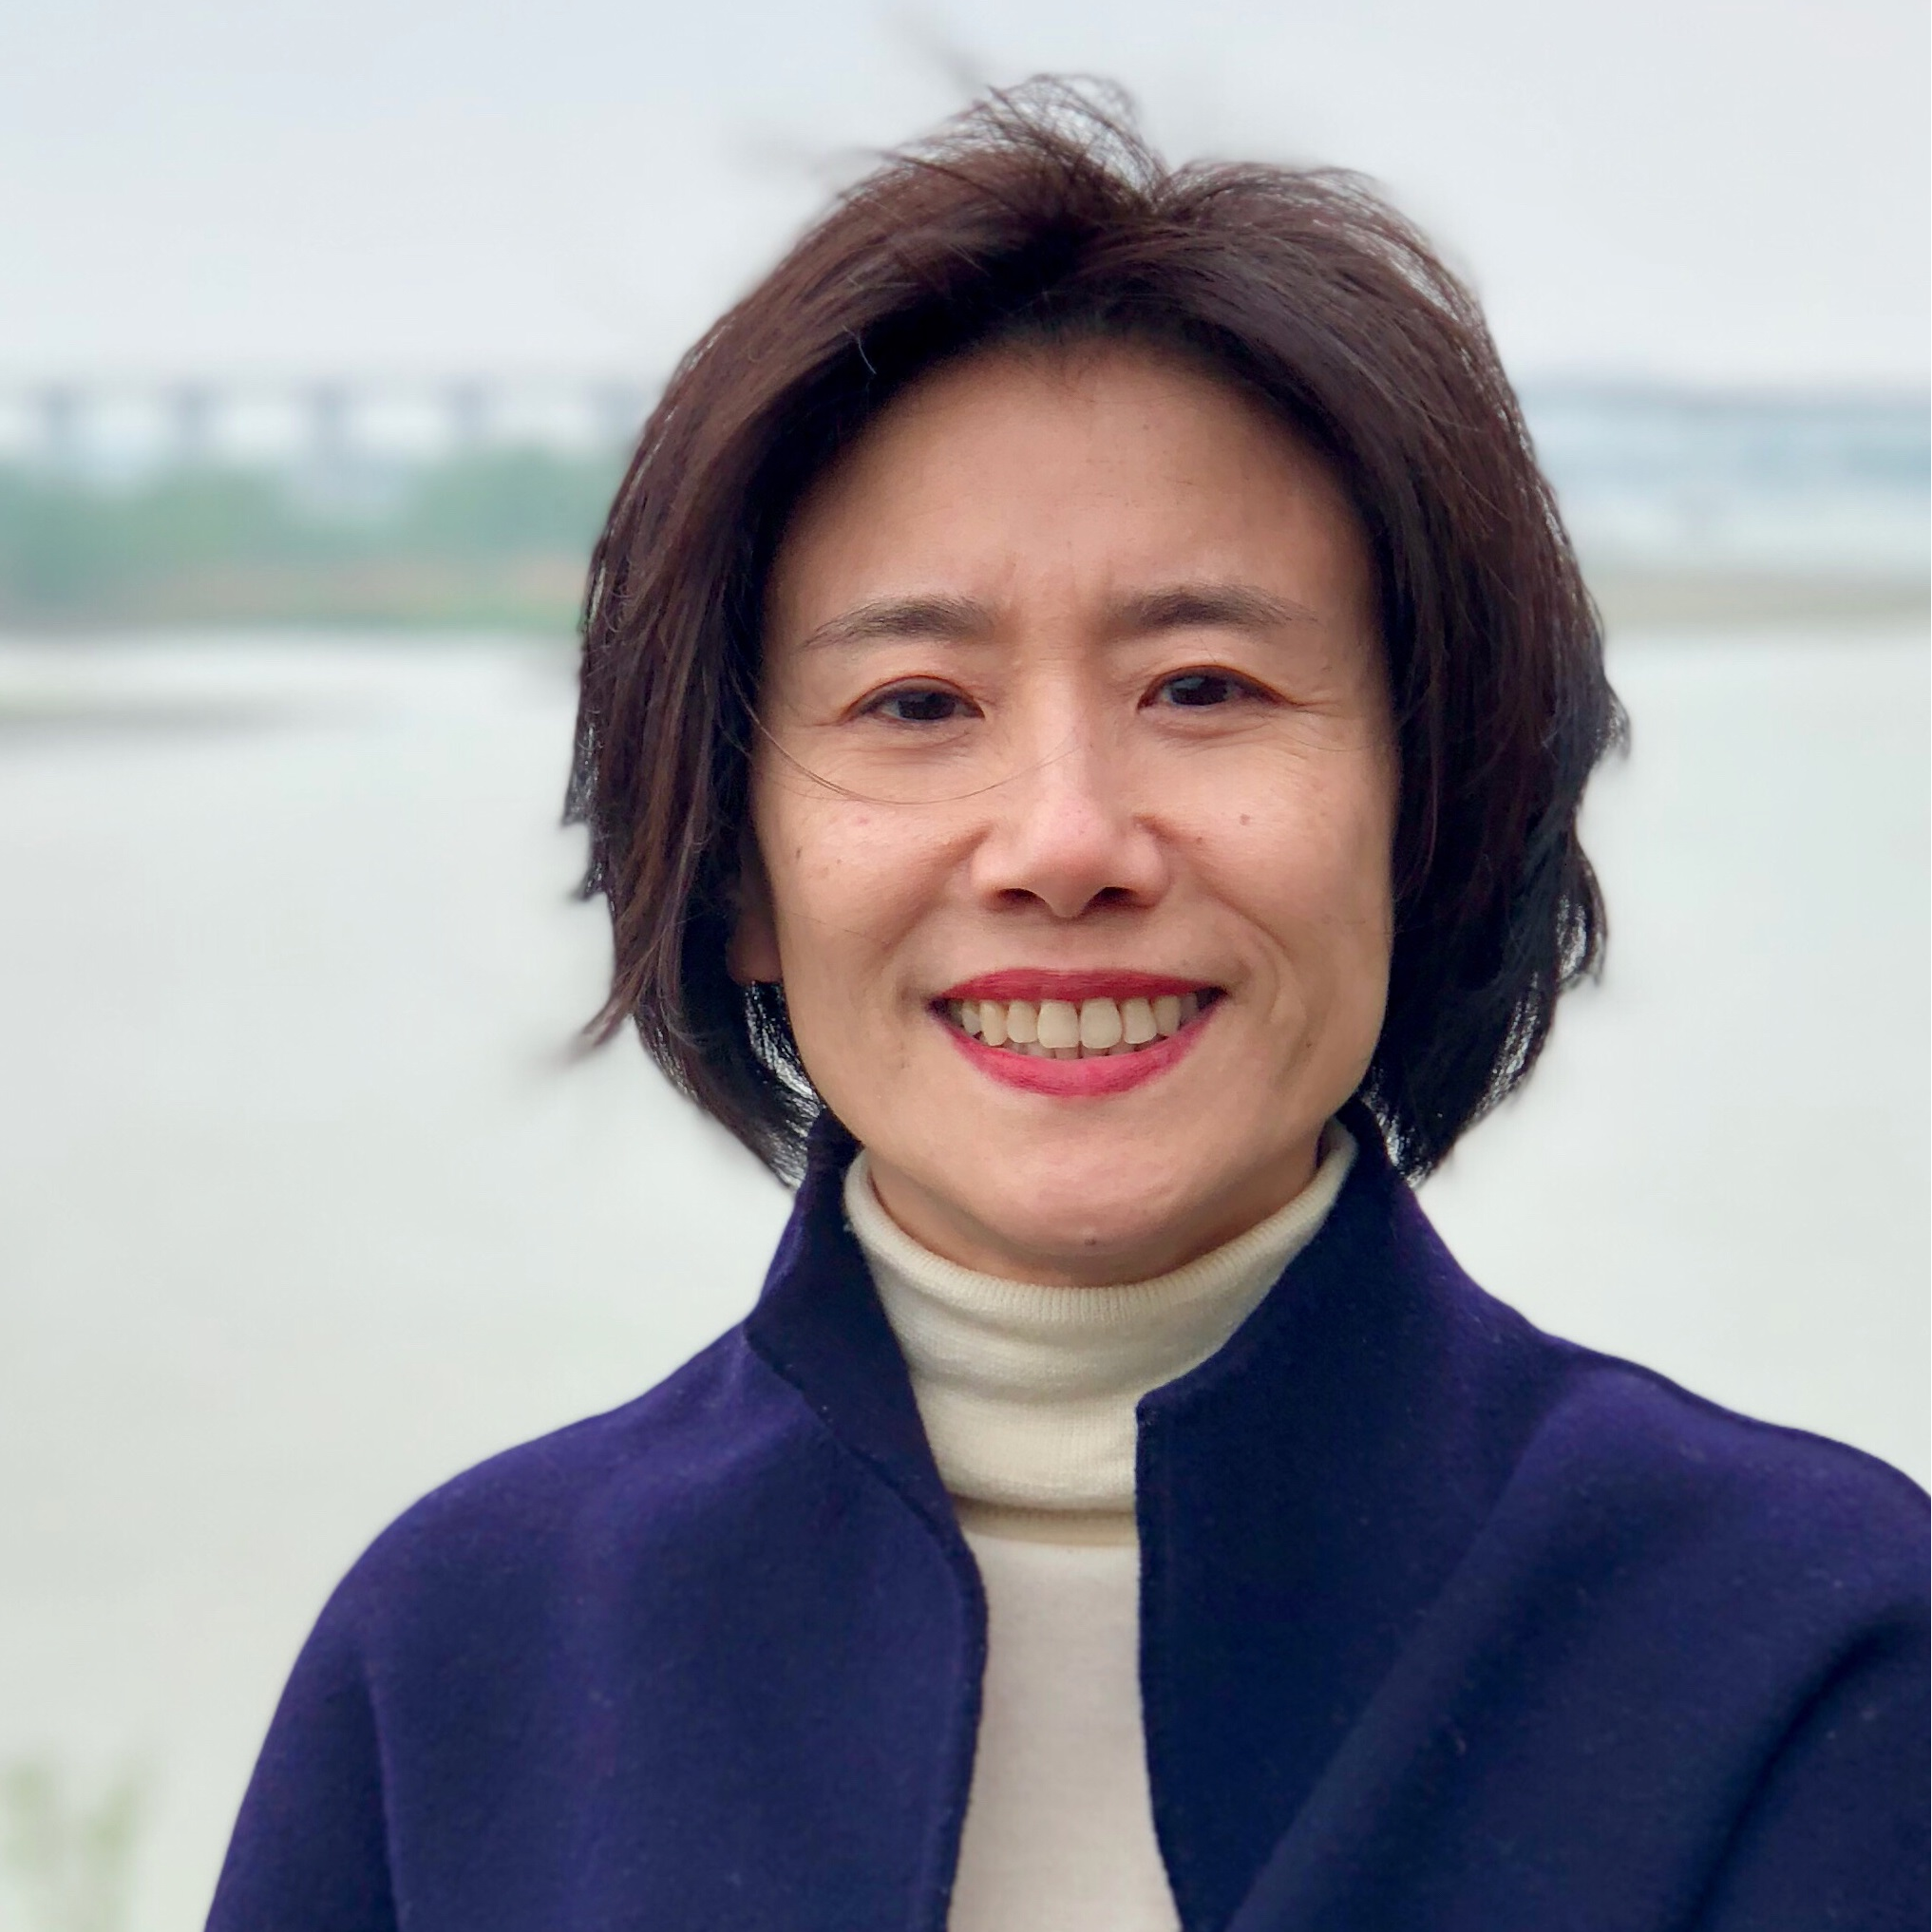 Yi Wang, VP & Area HR Director at GSK 葛兰素史克